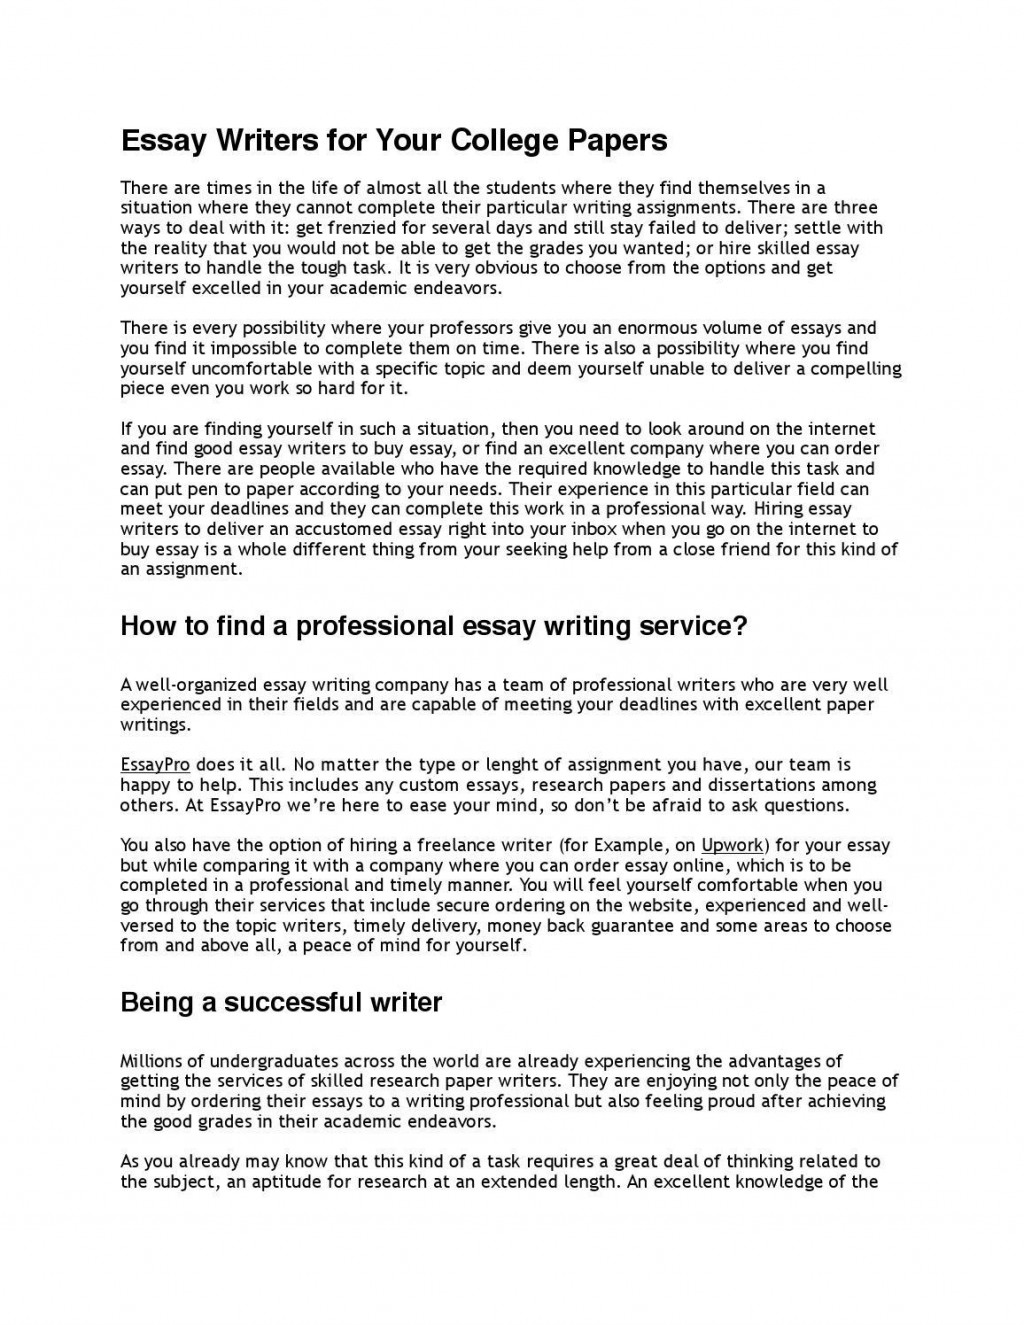 006 Who Are You Essay Page 1fit11562c1496ssl1 Rare Question Describe Large